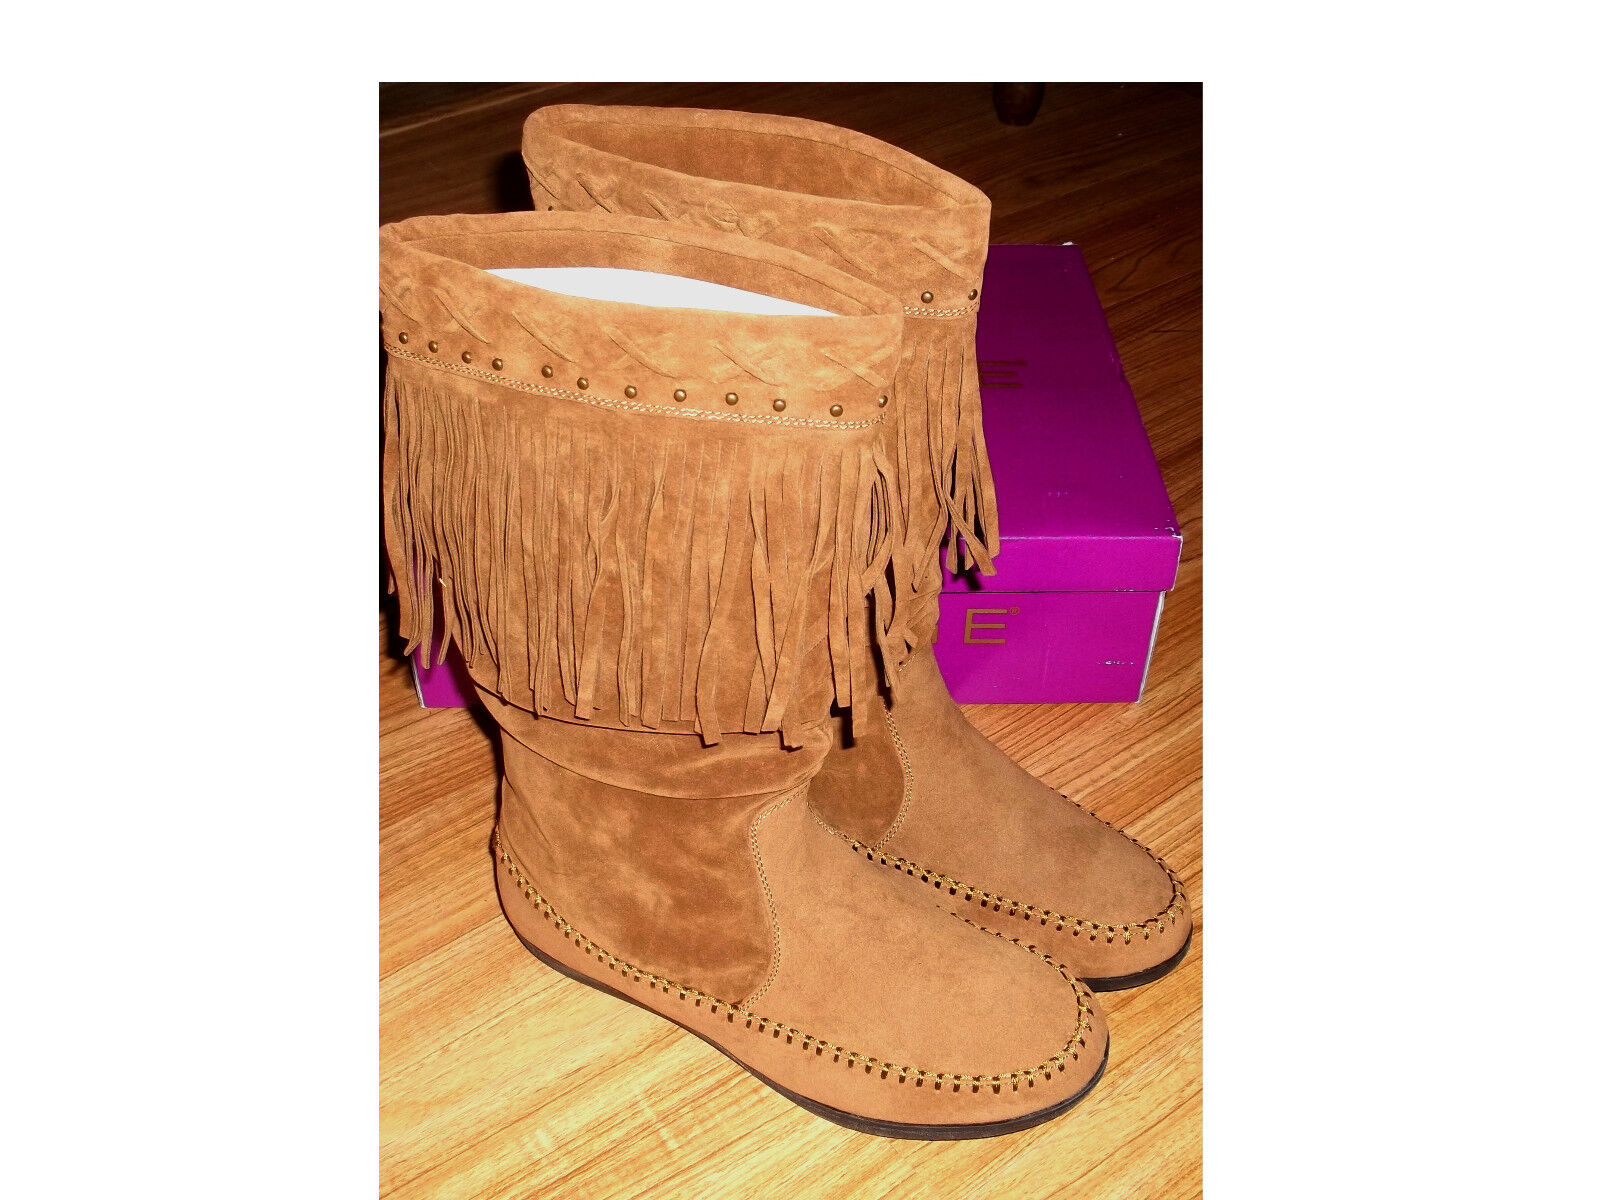 NWB Braun RAMPAGE CITRINE Midcalf Stiefel With Fringe SHIPPING Sz 7M  FREE SHIPPING Fringe 974ce2